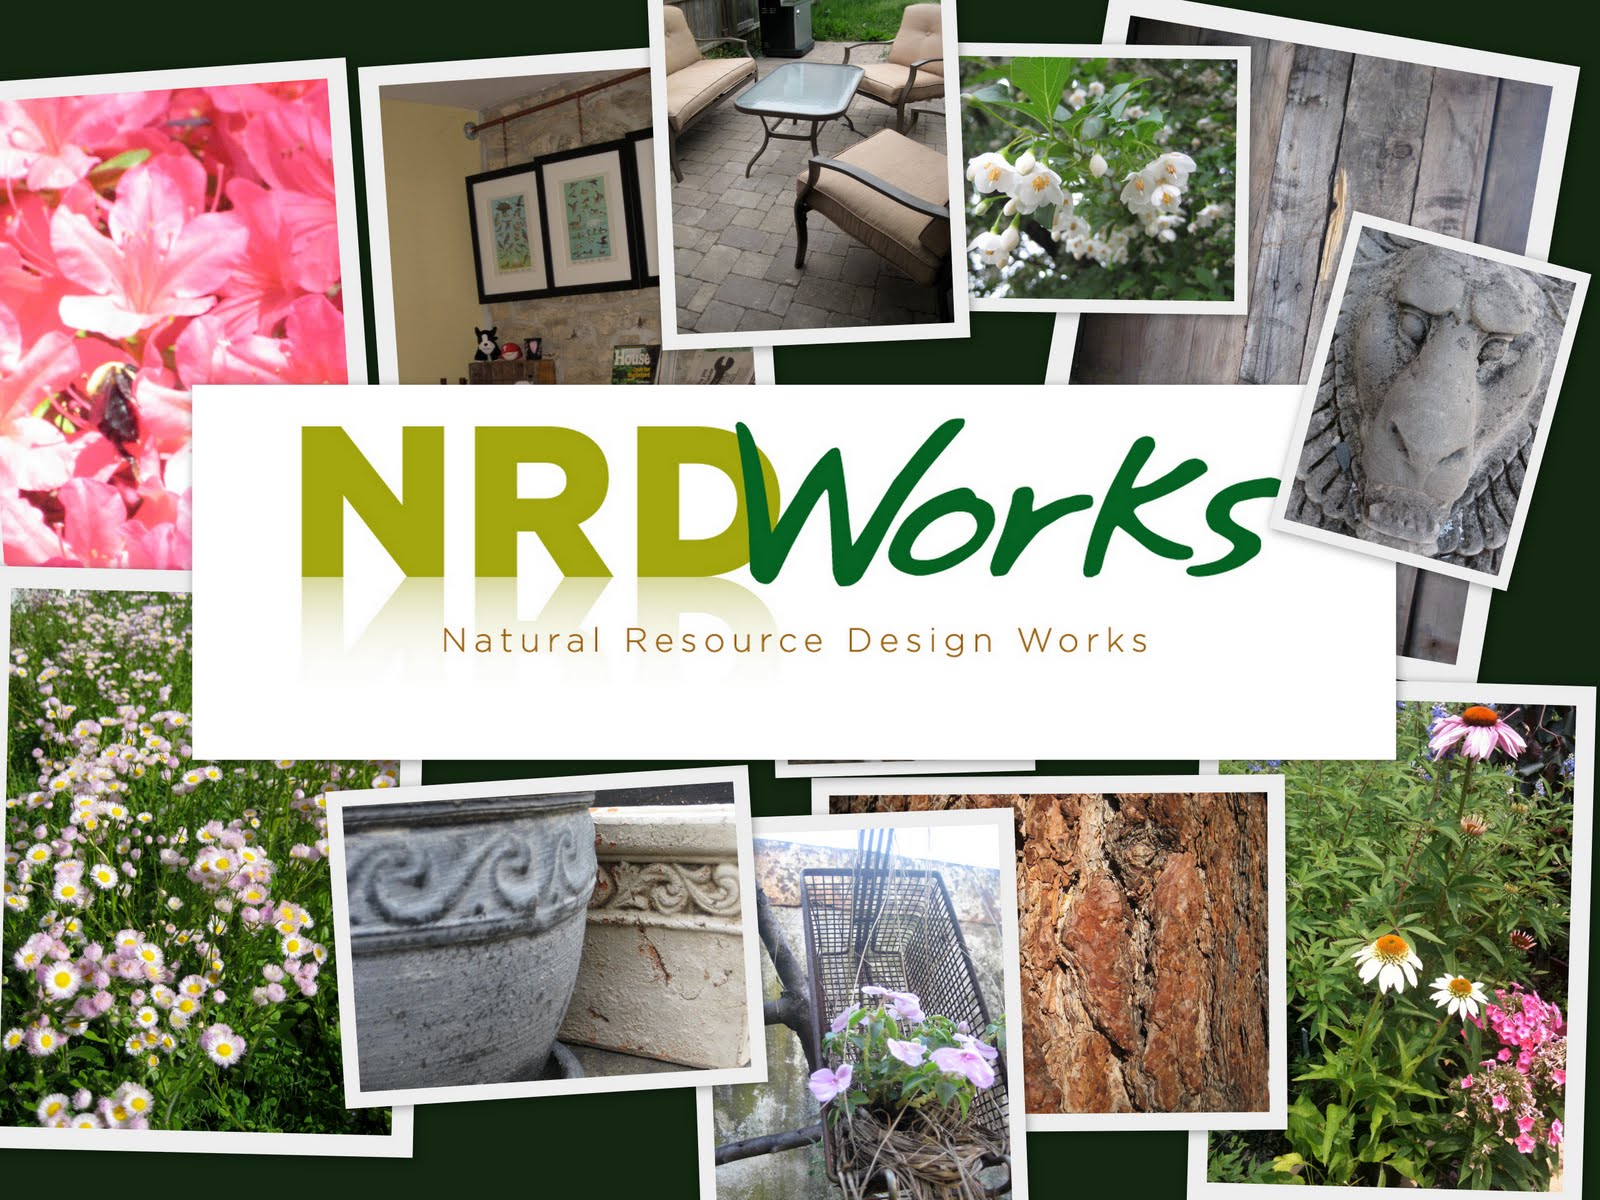 Natural Resource Design Works